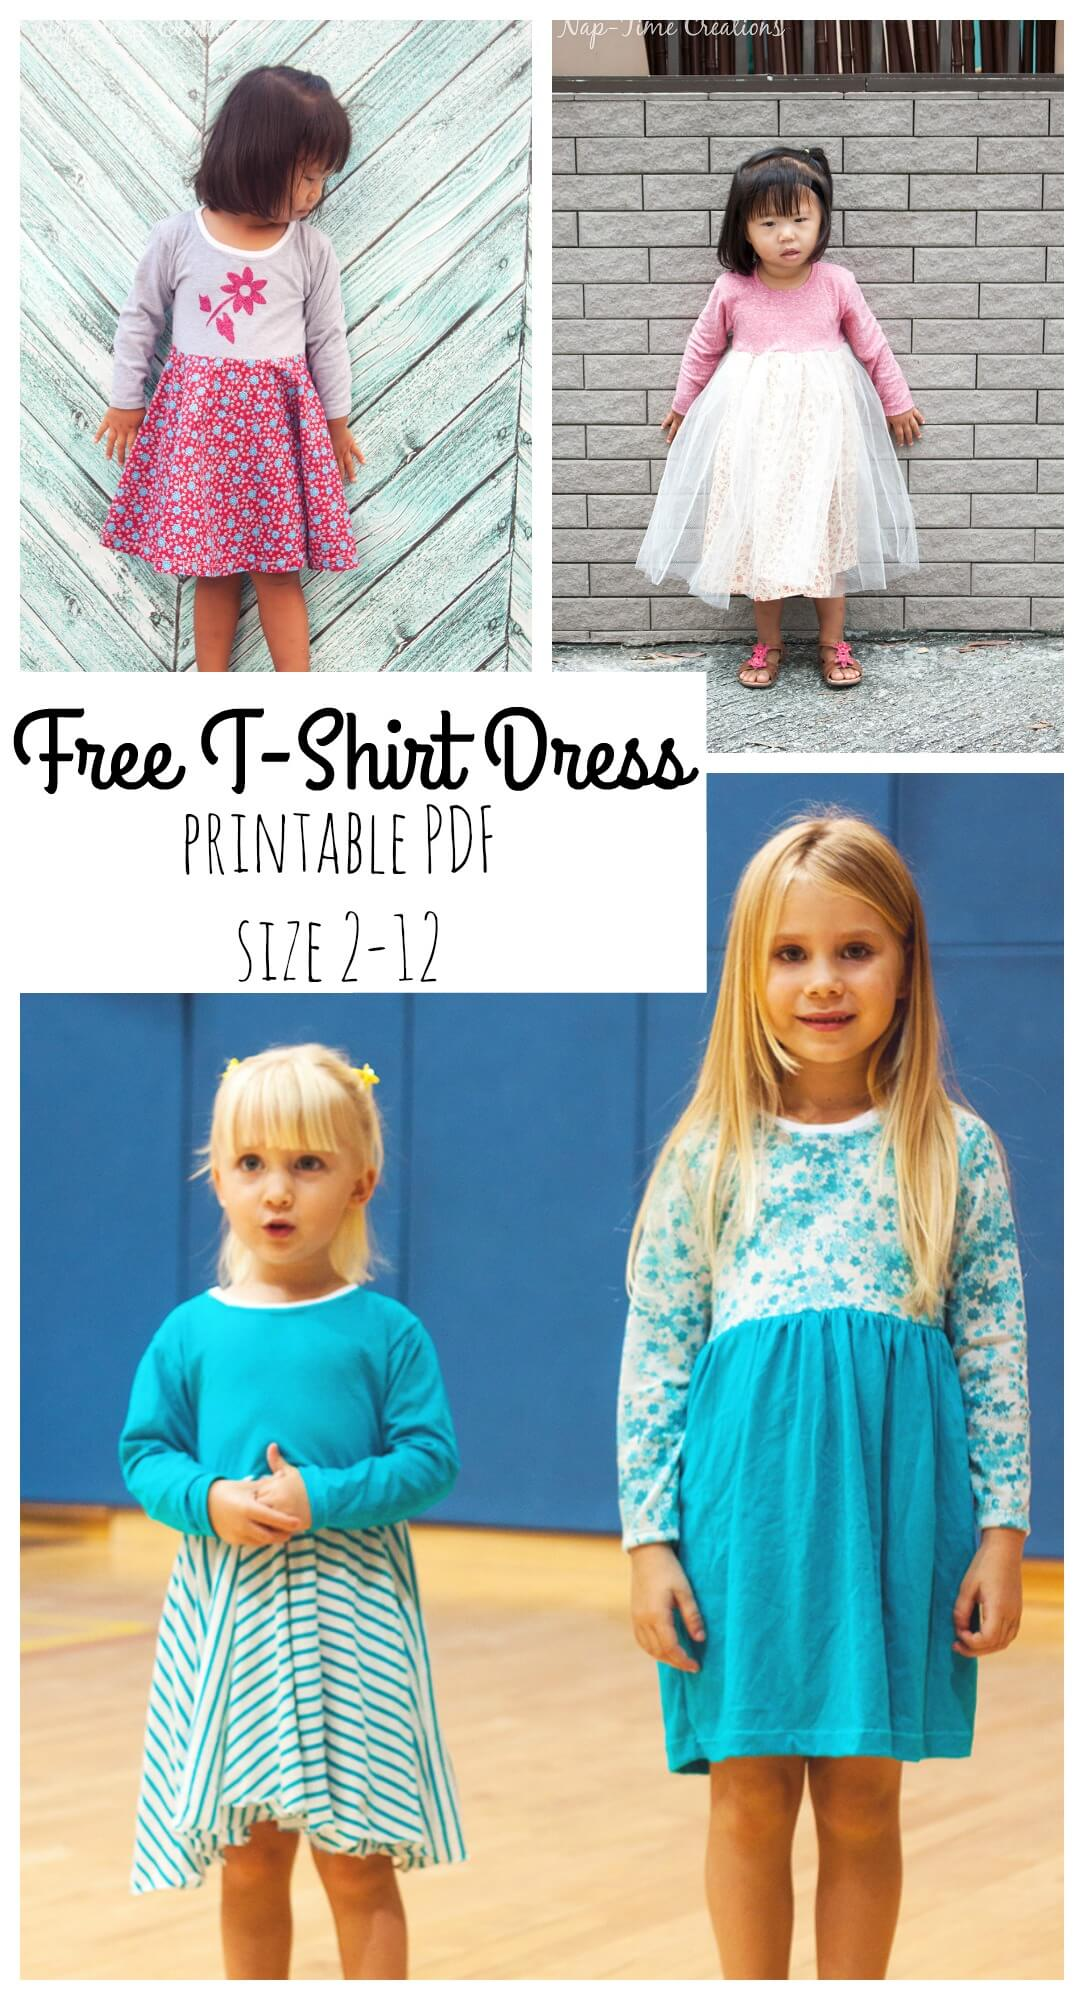 photograph about Free Printable Toddler Dress Patterns known as T-Blouse Gown Totally free PDF Habit - Daily life Sew Savory